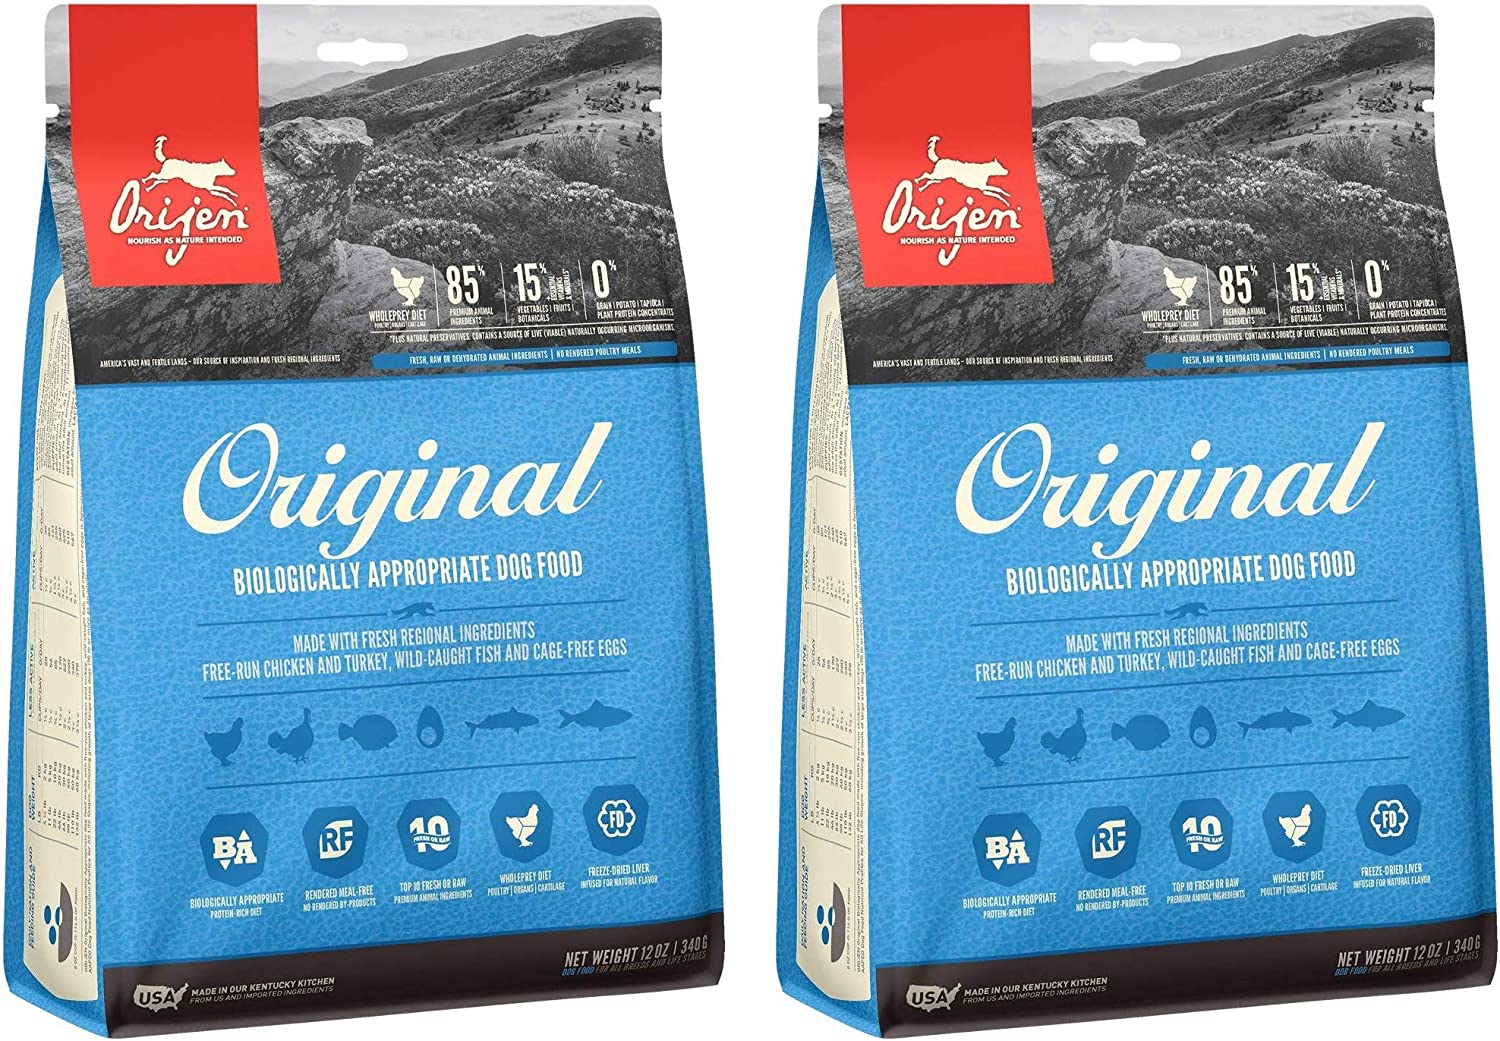 Orijen 2 Bags of Original Dog Food, 12 Ounces Each, High Protein, Grain Free, Made in The USA